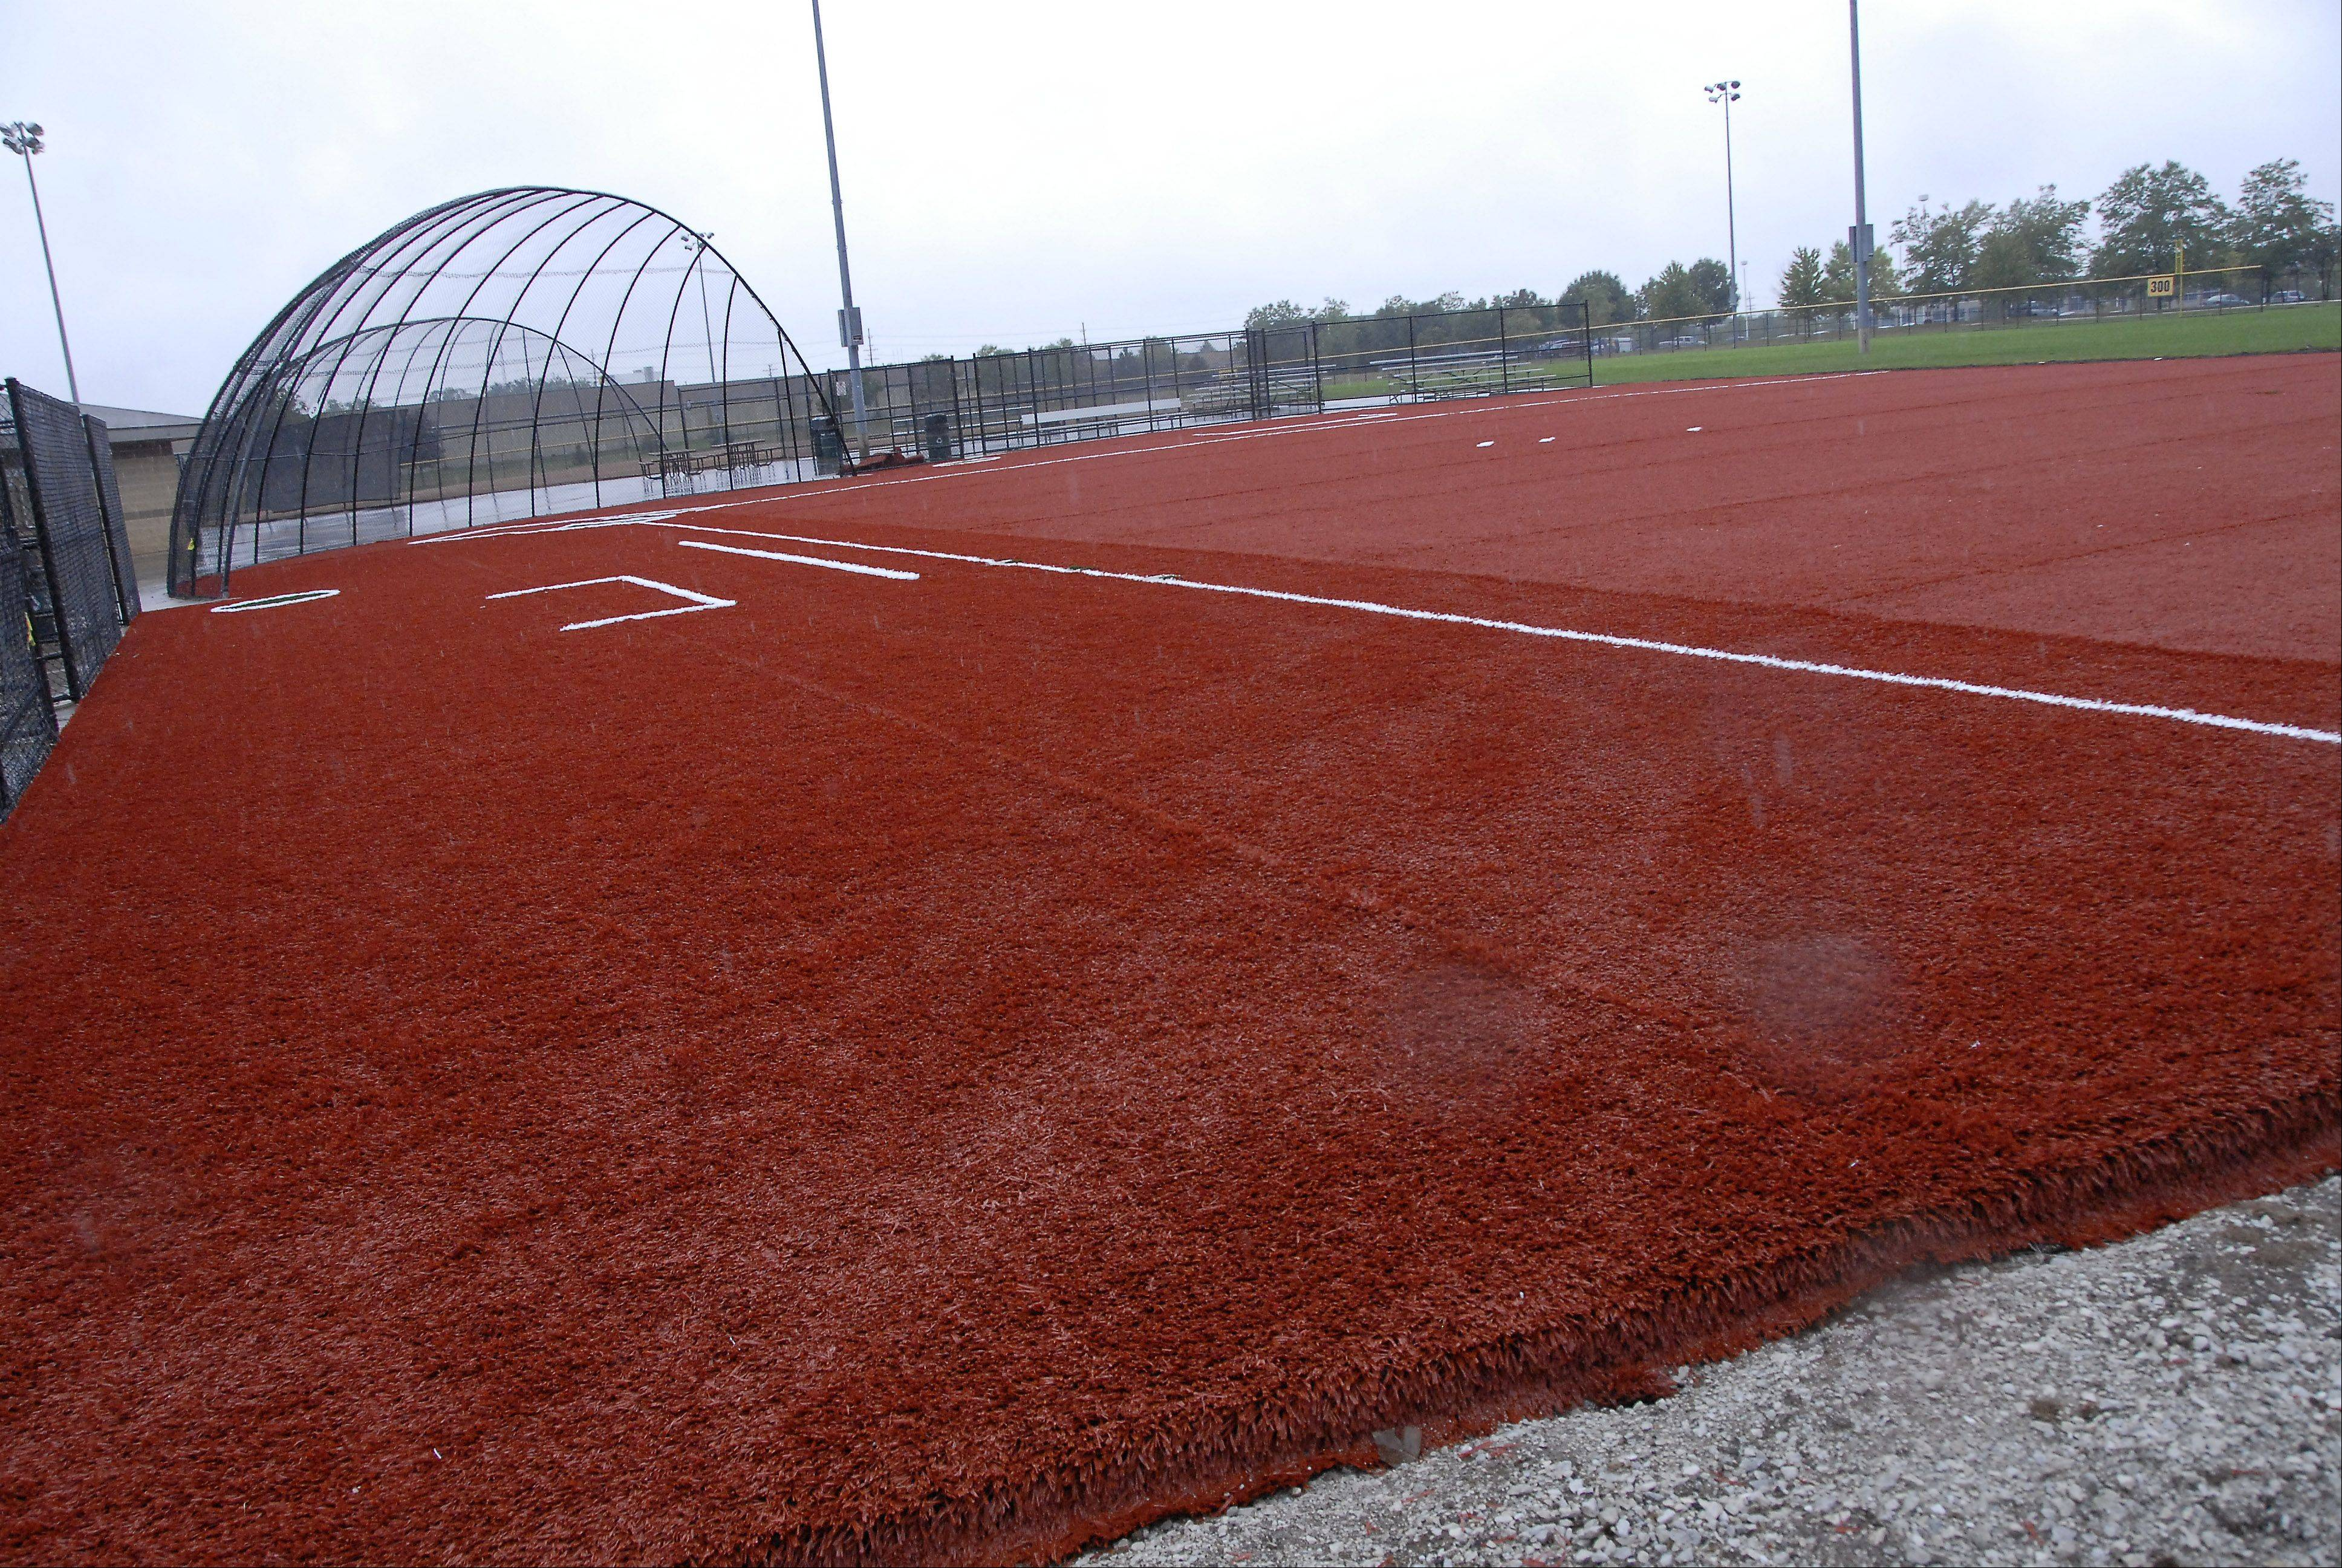 The Arlington Heights Park District has already installed new field turf on two s of its four baseball and softball fields at Melas Park in Mount Prospect. Officials say the new turf will offer a safer playing surface while also reducing rainouts.